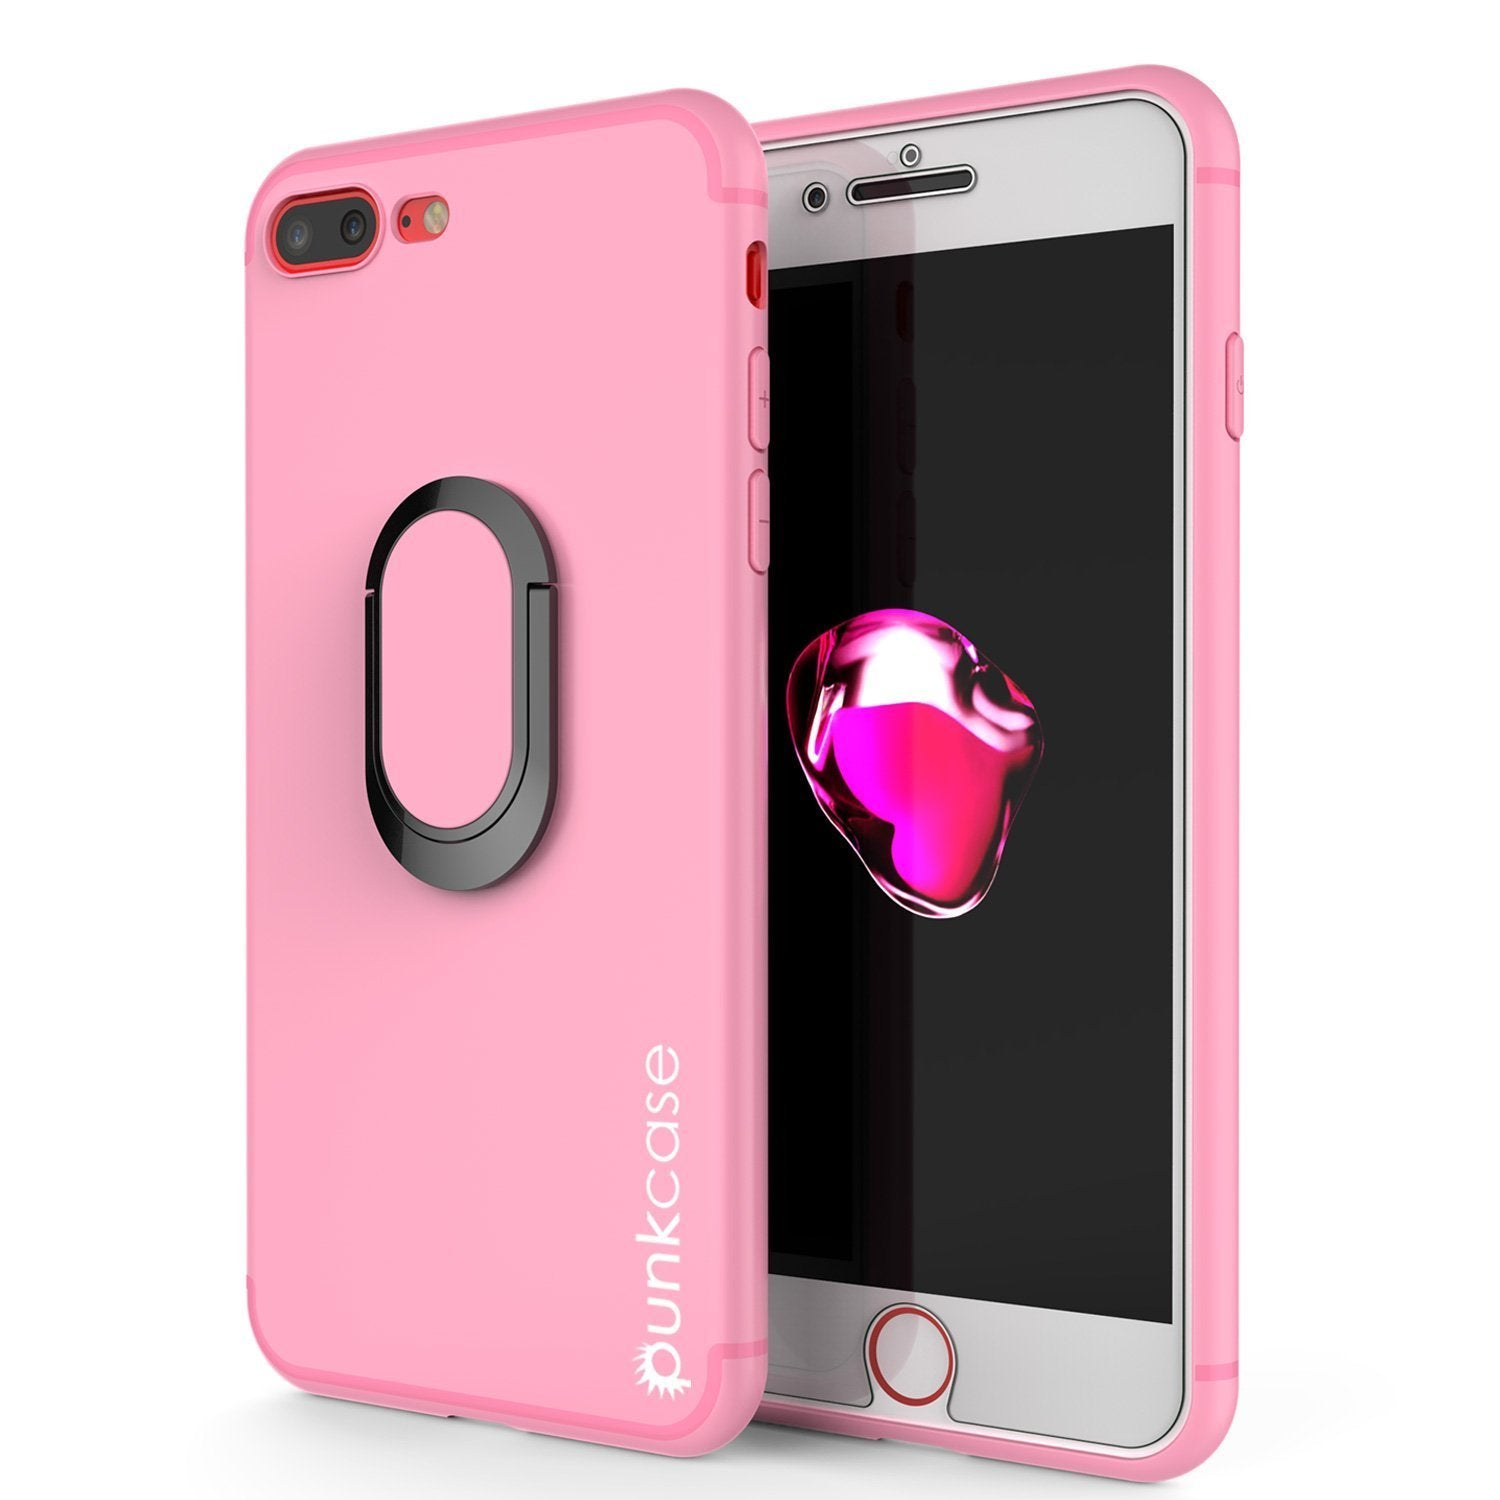 iPhone 8 Plus Case, Punkcase Magnetix Protective TPU Cover W/ Kickstand, Ring Grip Holder & Metal Plate for Magnetic Car Phone Mount PLUS Tempered Glass Screen Protector for Apple iPhone 7+/8+ [Pink]